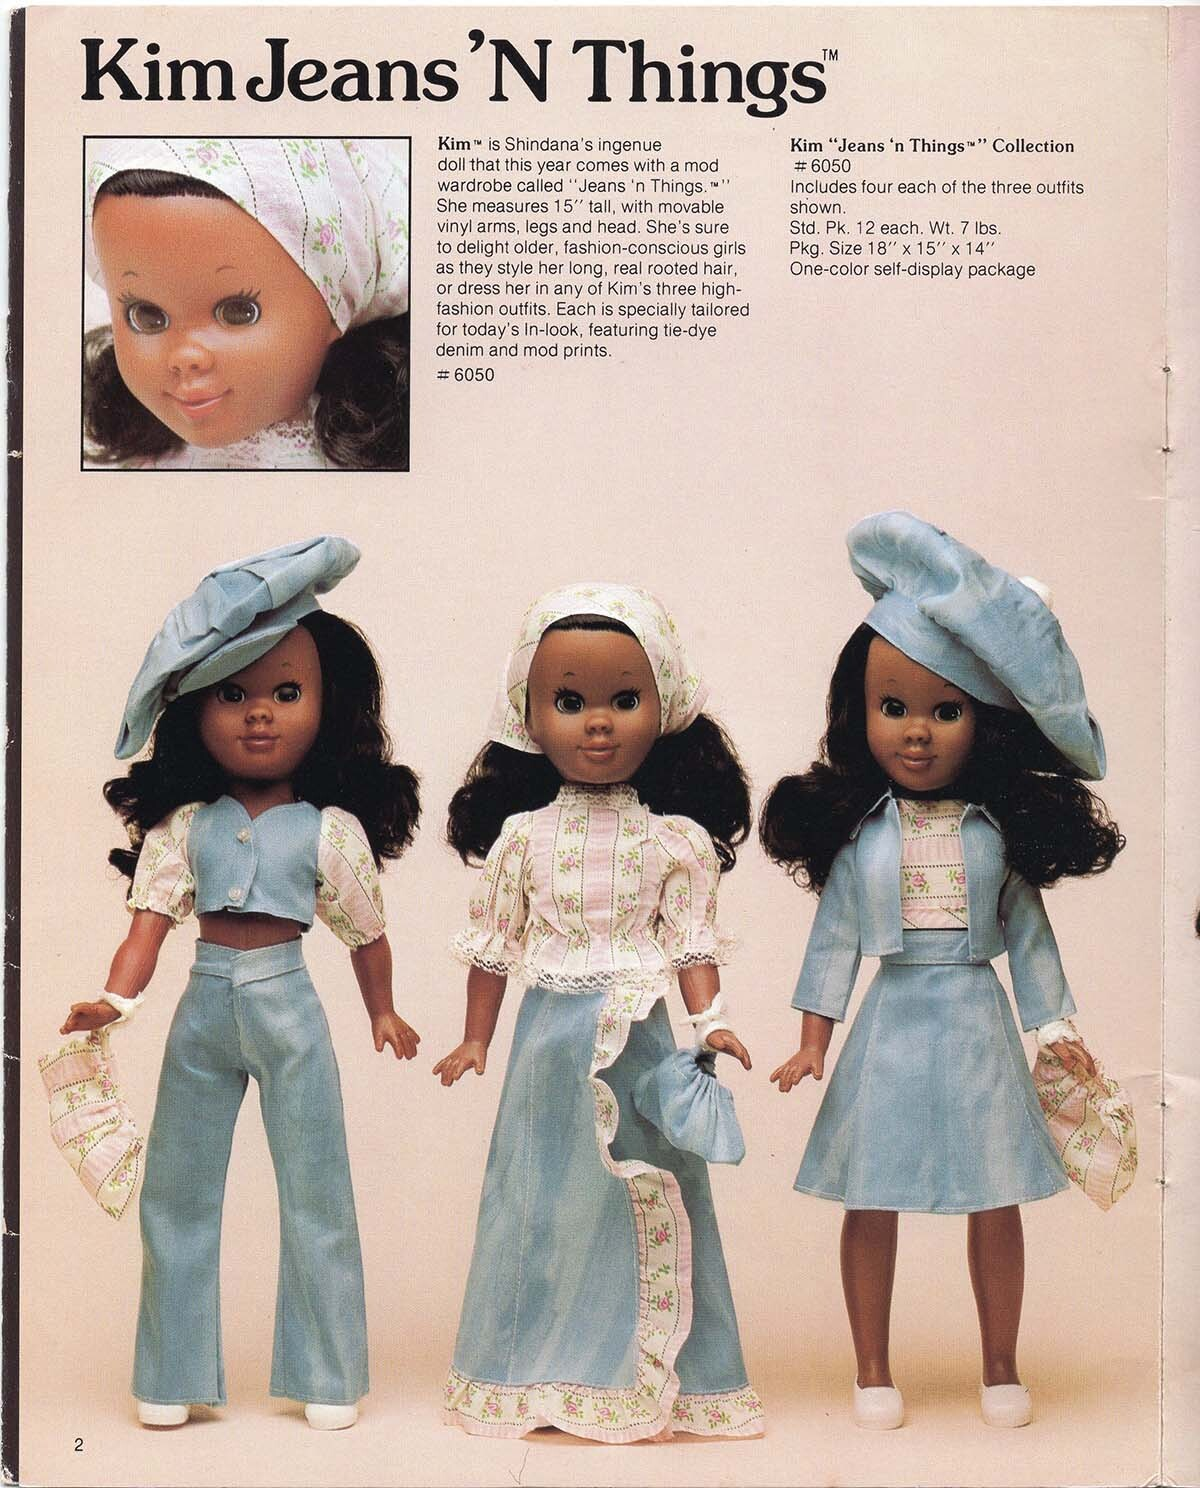 Kim Jeans 'N Things collection from Shindana Toys features long, real rooted hair and fashionable outfits    Courtesy of Billie Green